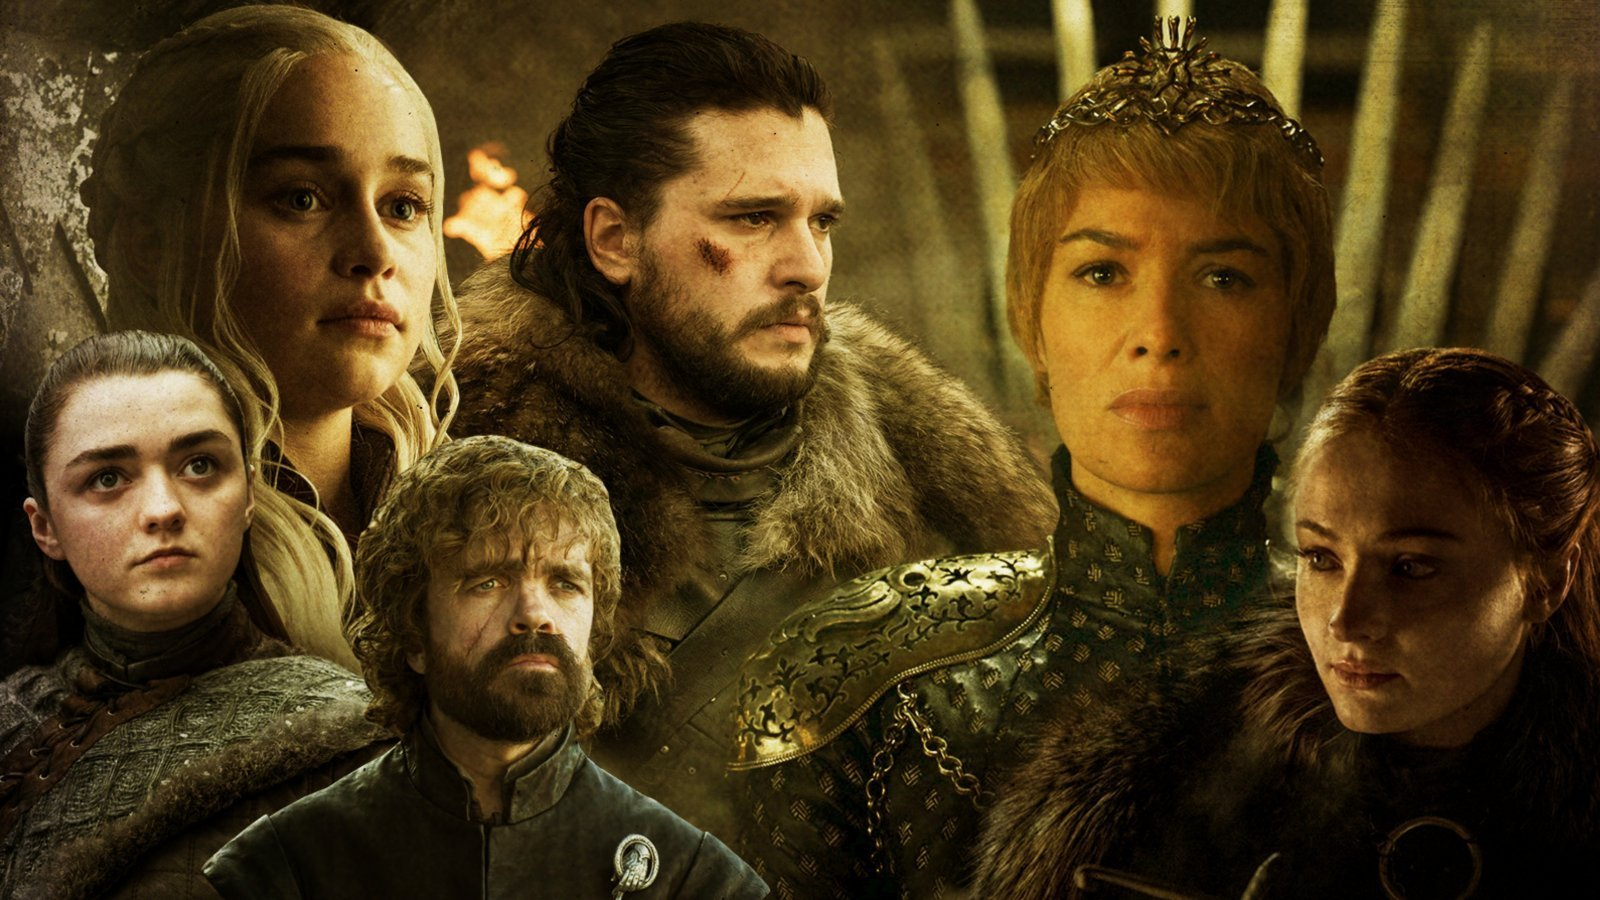 'Game of Thrones' and 'Veep' ride sentimental wave into Emmys